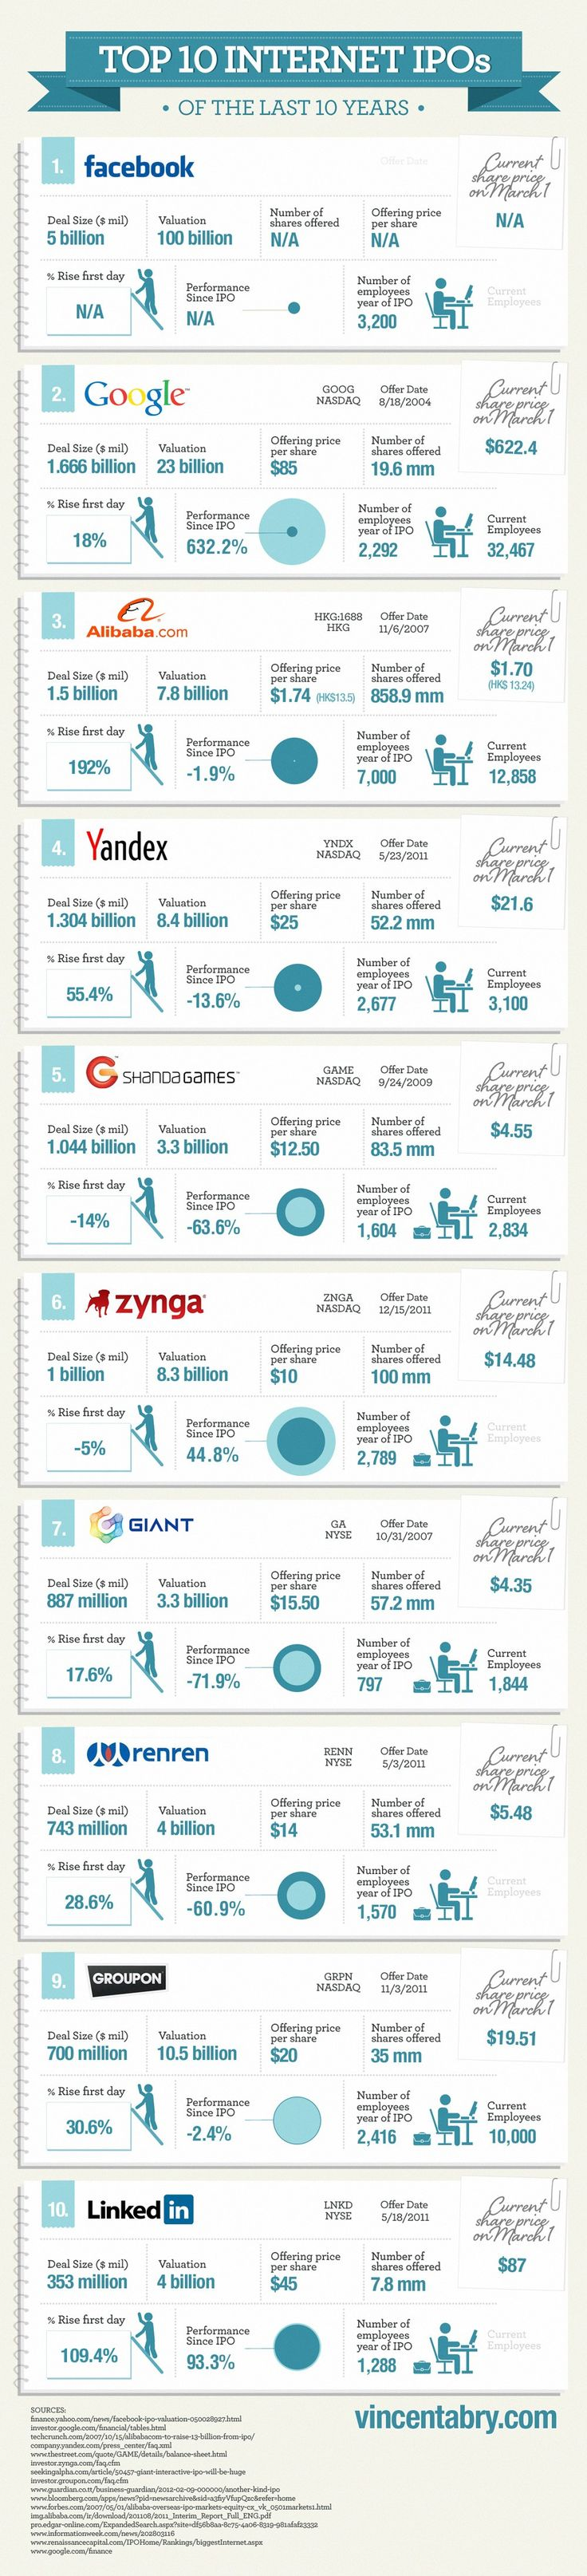 Infographic the top 10 internet ipos of the last 10 years